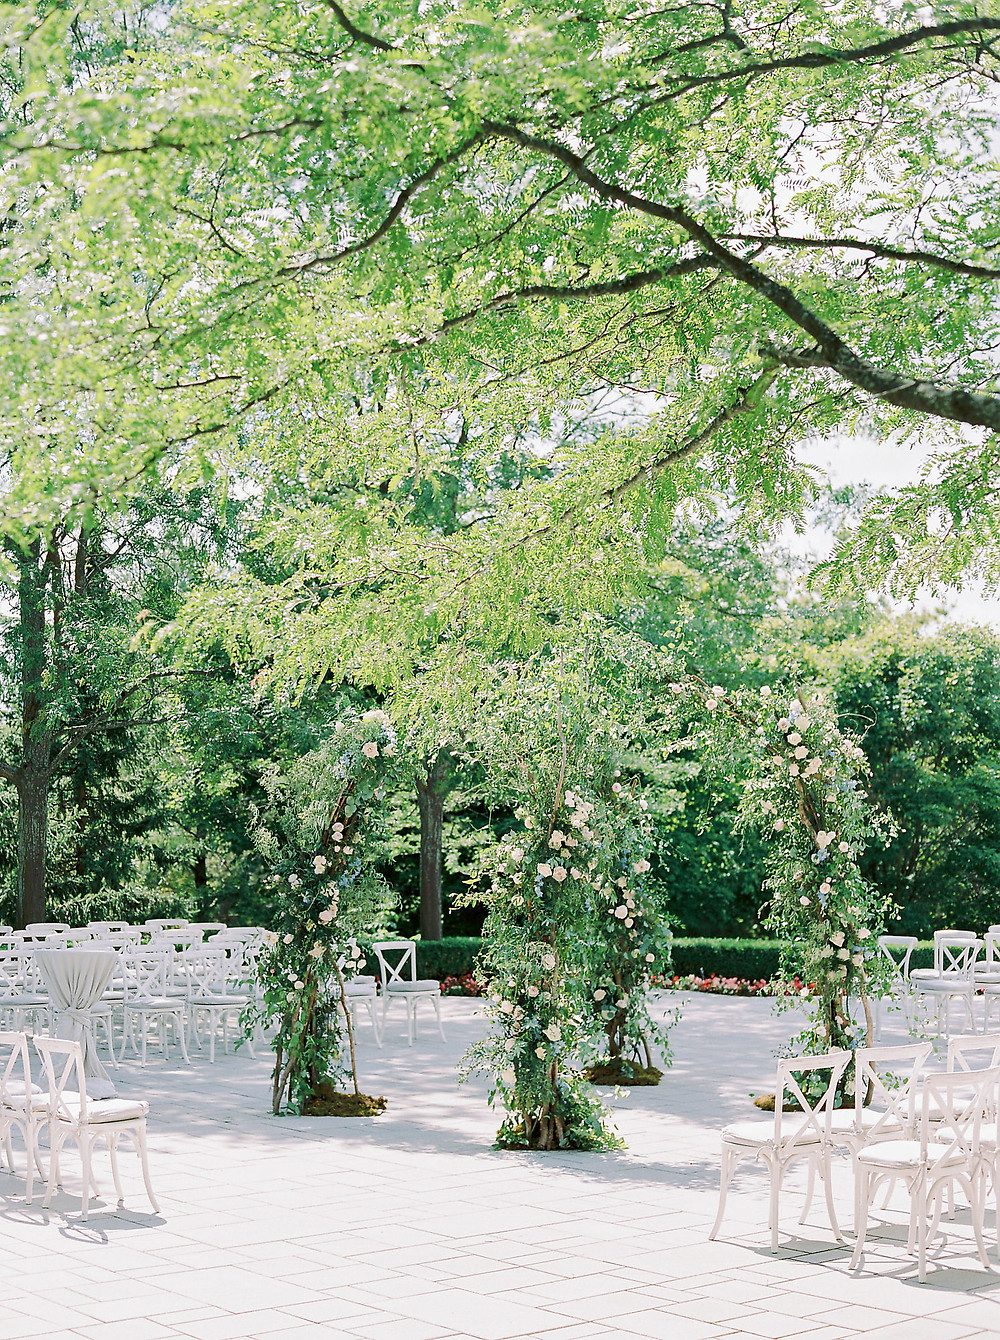 Beautiful garden wedding by Shealyn Angus Weddings & Events, shot by Will Reid Photography